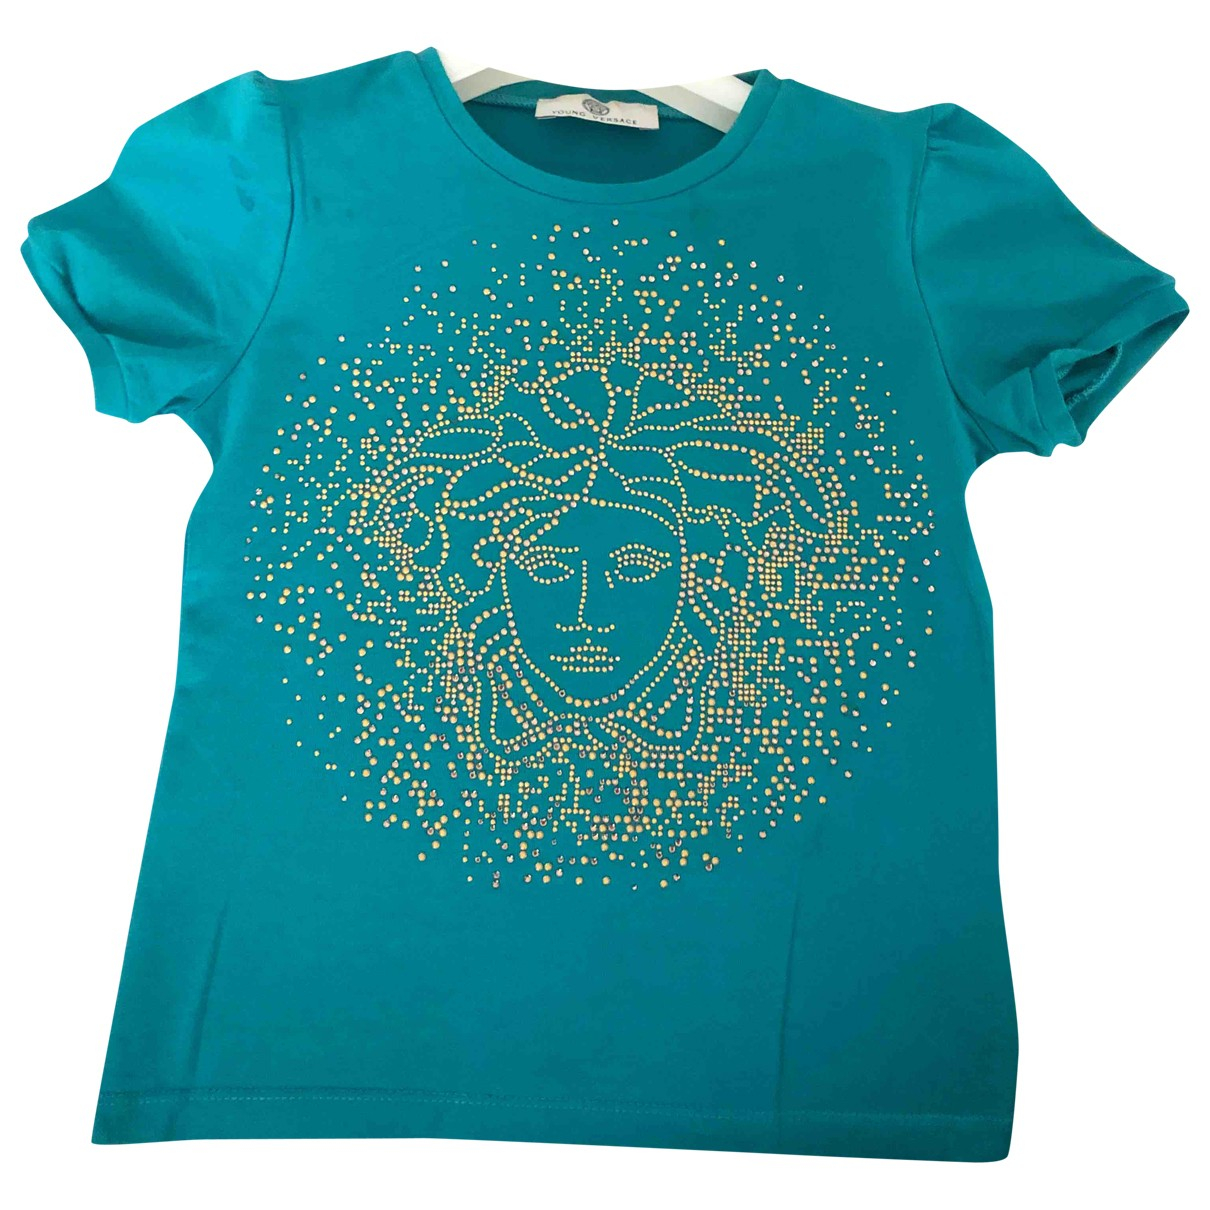 Versace \N Turquoise Cotton Outfits for Kids 6 years - up to 114cm FR